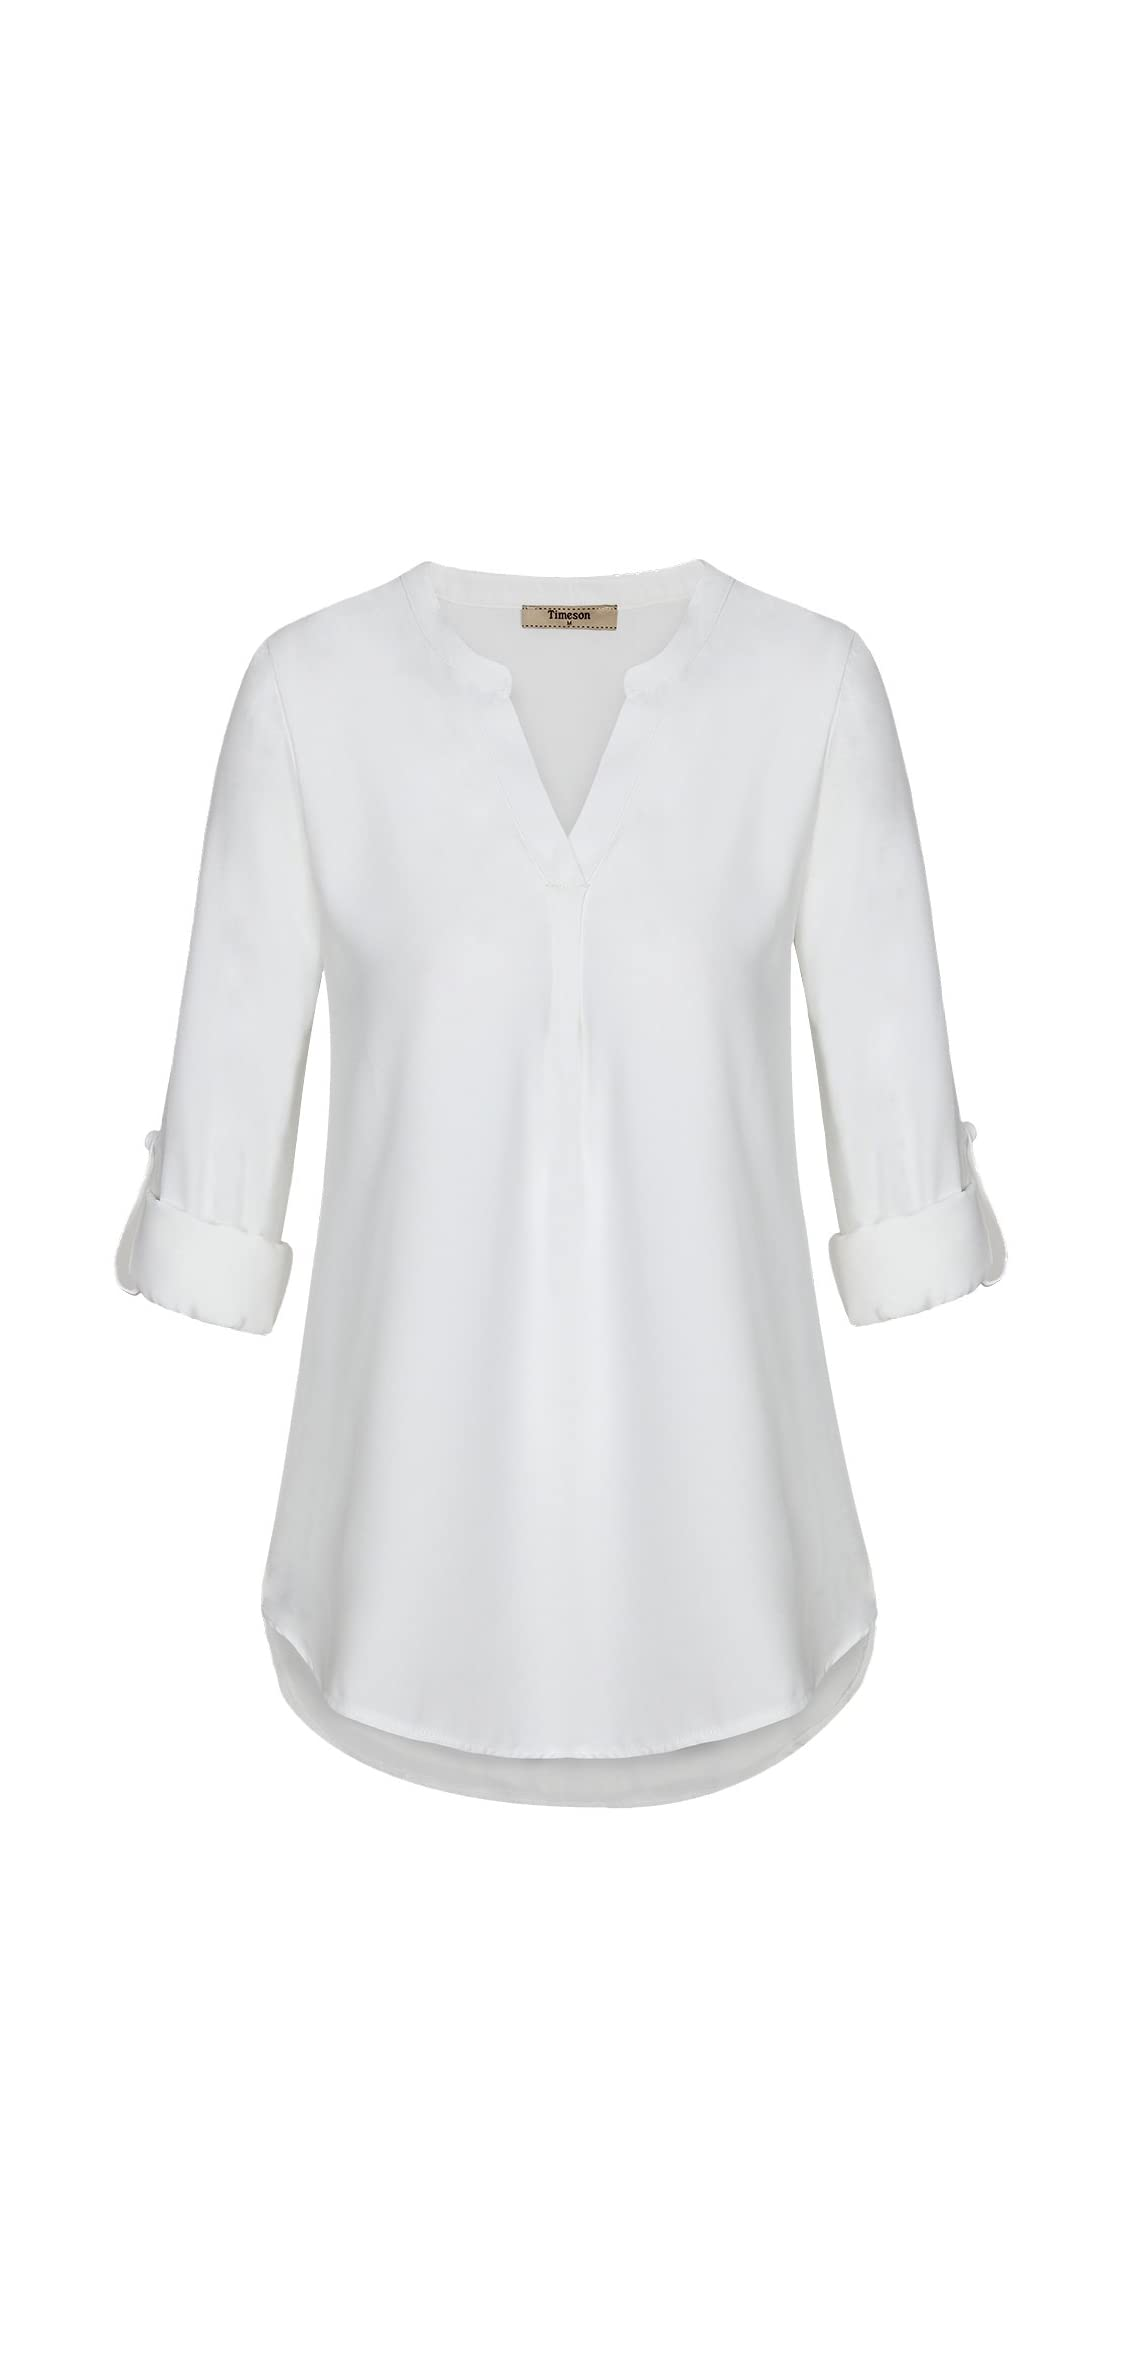 Women's Casual Chiffon V Neck Cuffed Sleeve Blouse Tops